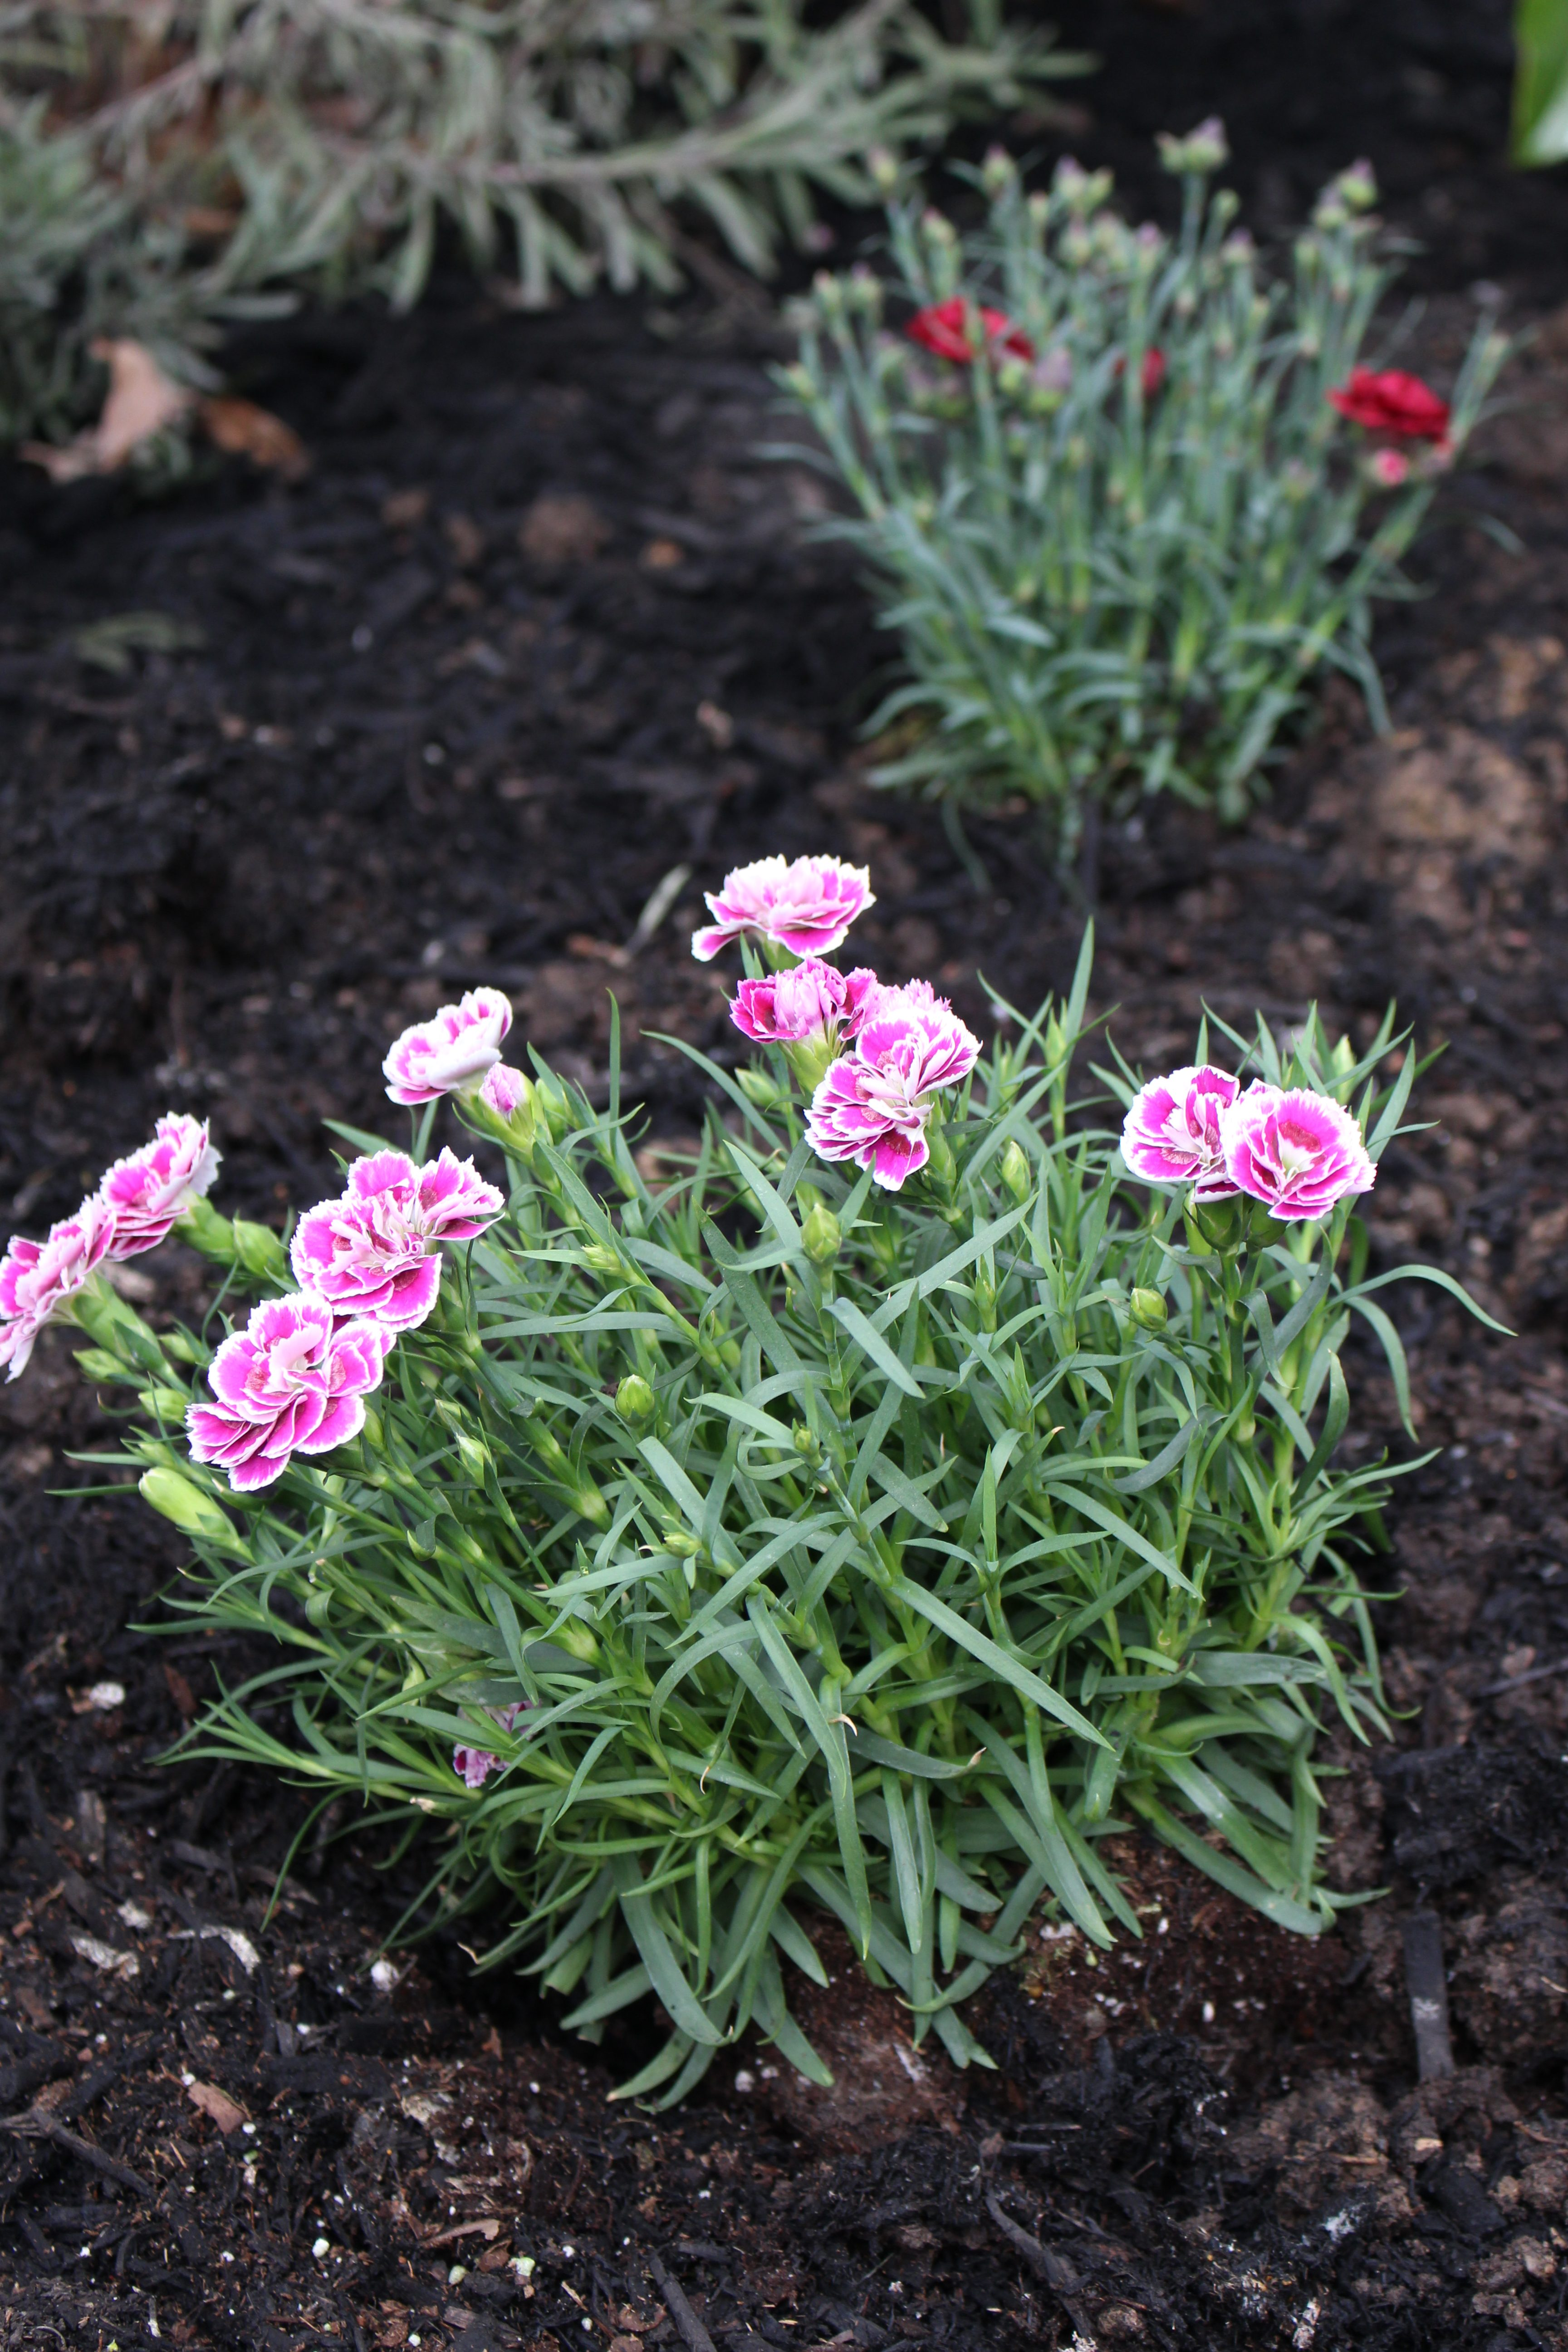 How to Choose the Best Plants for a Butterfly Garden- butterflies- plants that attract butterflies- gardening- plants- flowers- perennials- butterfly plants- Monrovia-